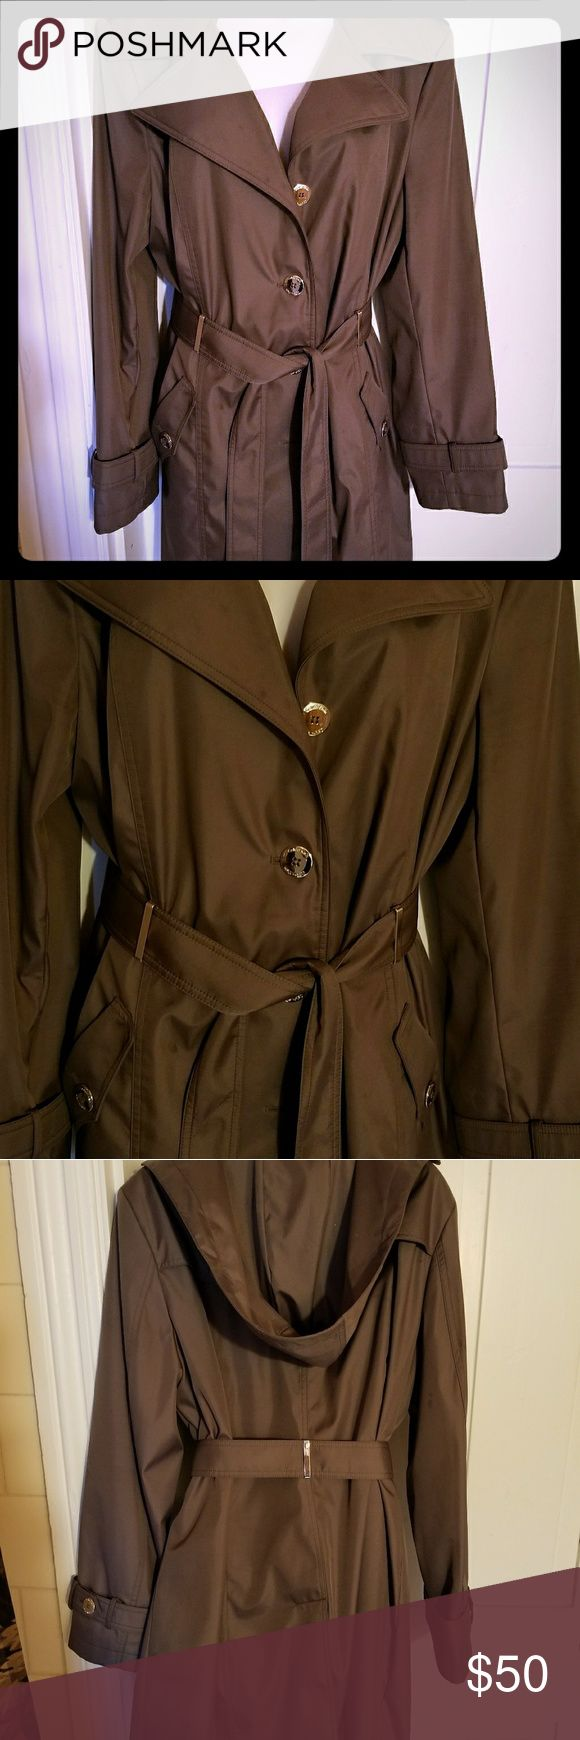 Brown Trench Coat Beautiful, Lined, Hooded, Double Breasted Trench coat. Calvin Klein Jackets & Coats Trench Coats